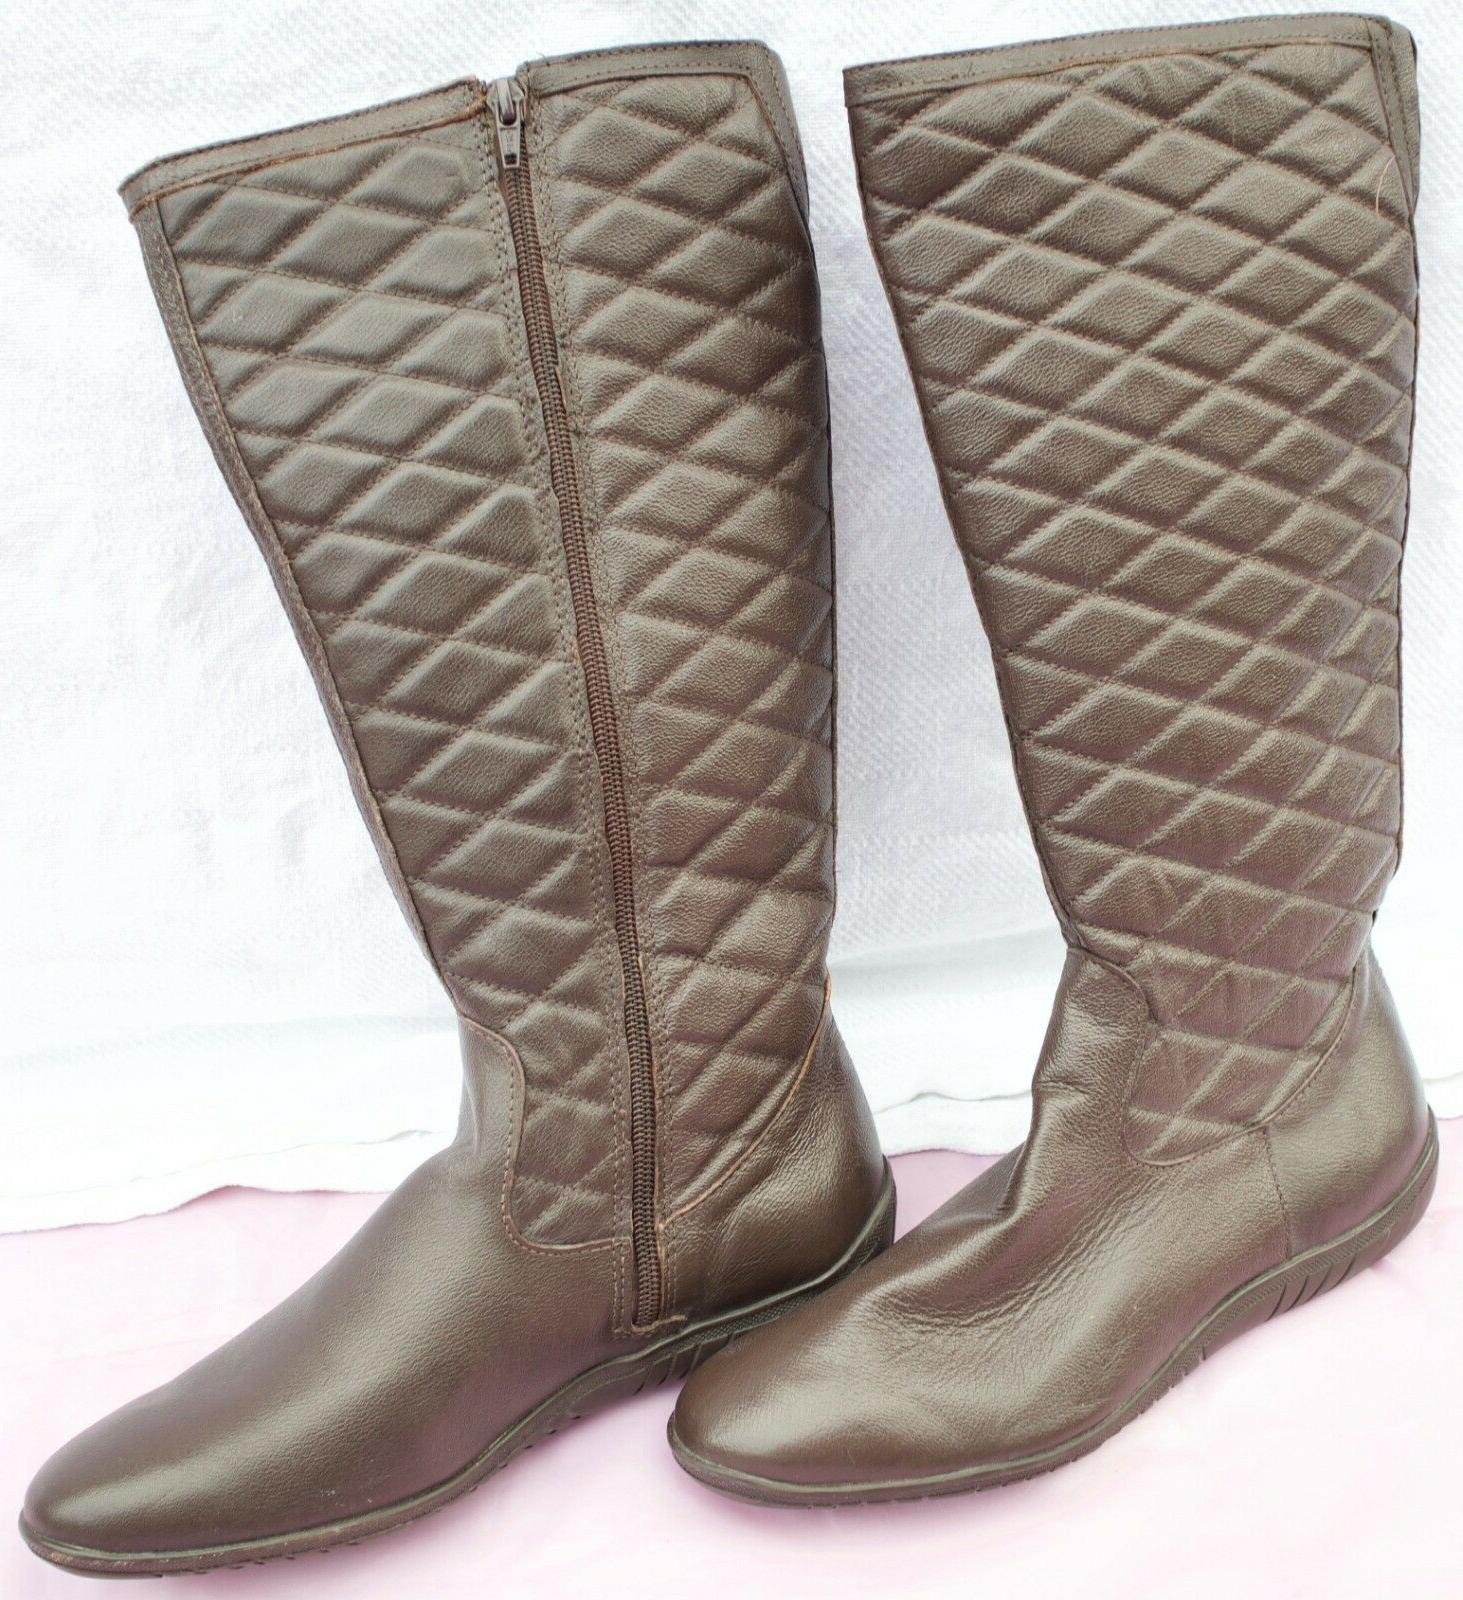 Boots Size 38 7.5